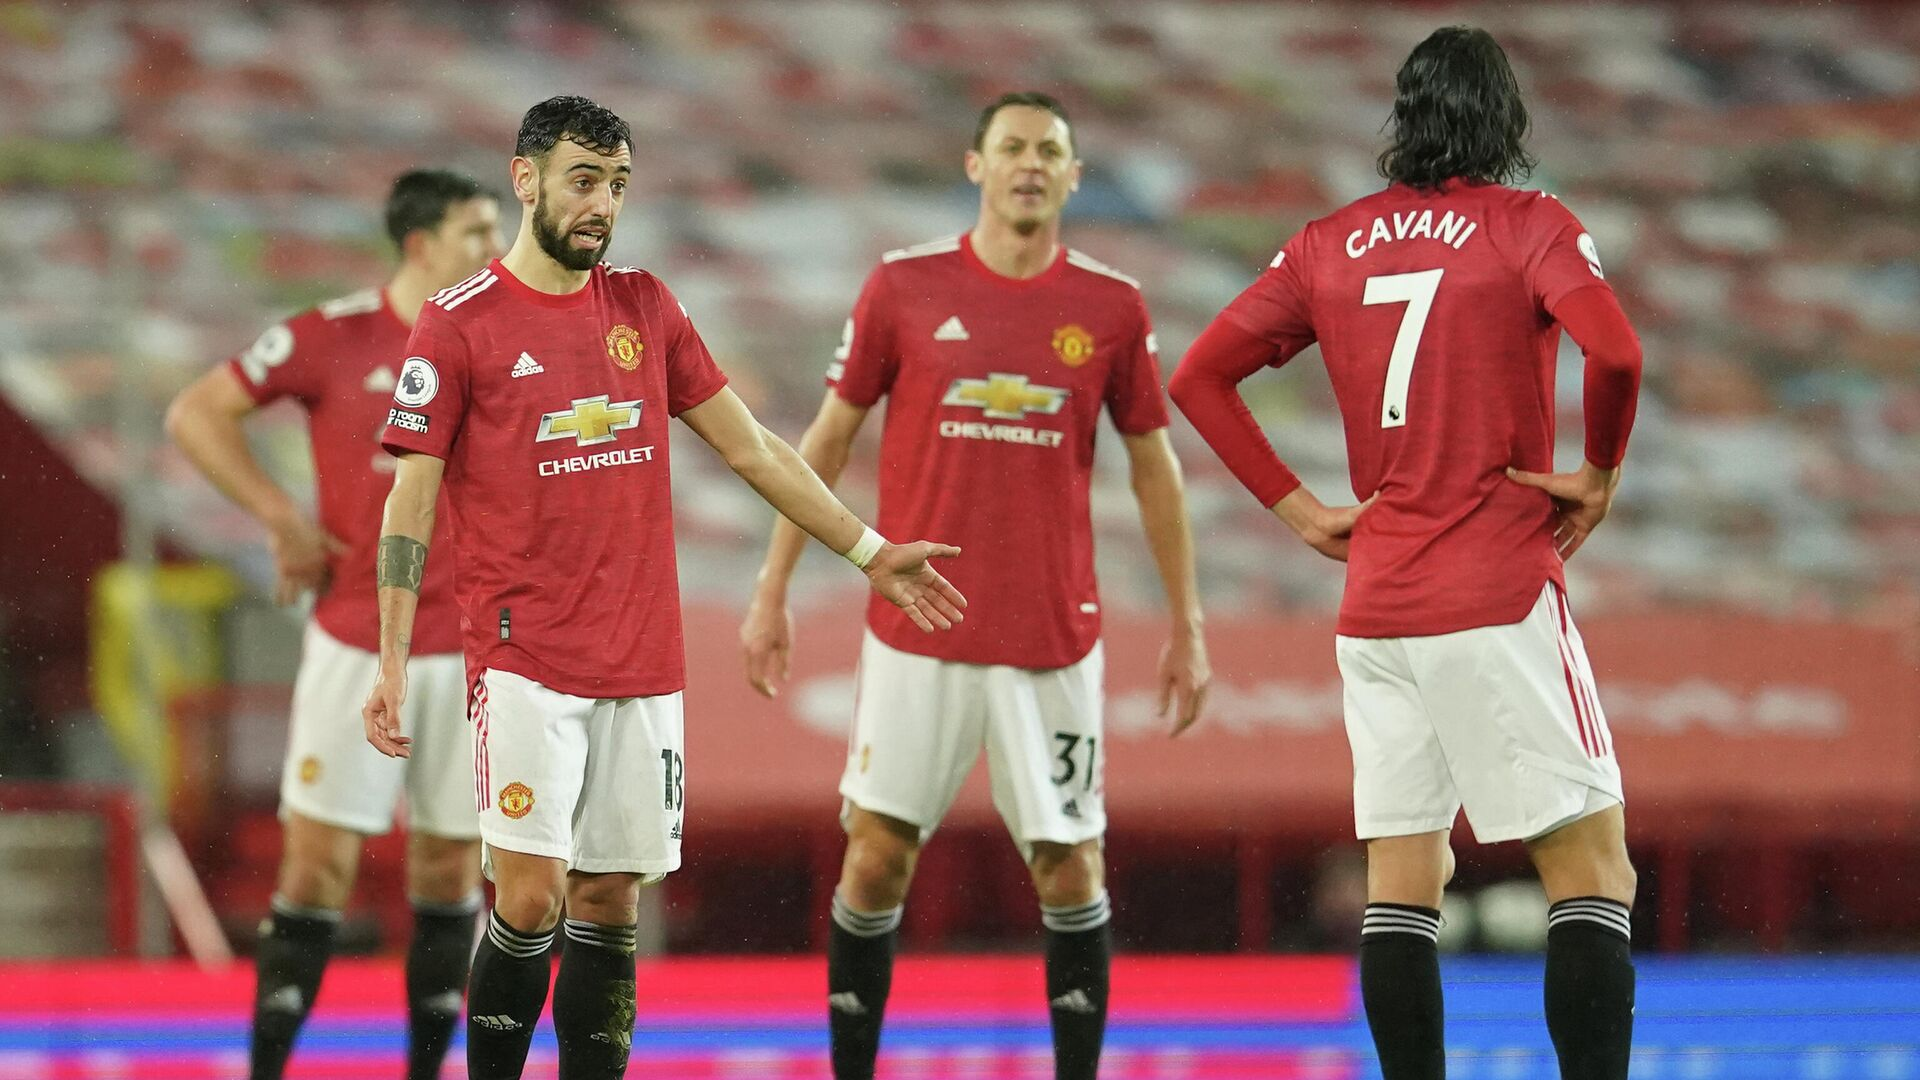 Manchester United's Portuguese midfielder Bruno Fernandes (L) and teammates react after conceding their second goal during the English Premier League football match between Manchester United and Sheffield United at Old Trafford in Manchester, north west England, on January 27, 2021. (Photo by Dave Thompson / POOL / AFP) / RESTRICTED TO EDITORIAL USE. No use with unauthorized audio, video, data, fixture lists, club/league logos or 'live' services. Online in-match use limited to 120 images. An additional 40 images may be used in extra time. No video emulation. Social media in-match use limited to 120 images. An additional 40 images may be used in extra time. No use in betting publications, games or single club/league/player publications. /  - РИА Новости, 1920, 28.01.2021